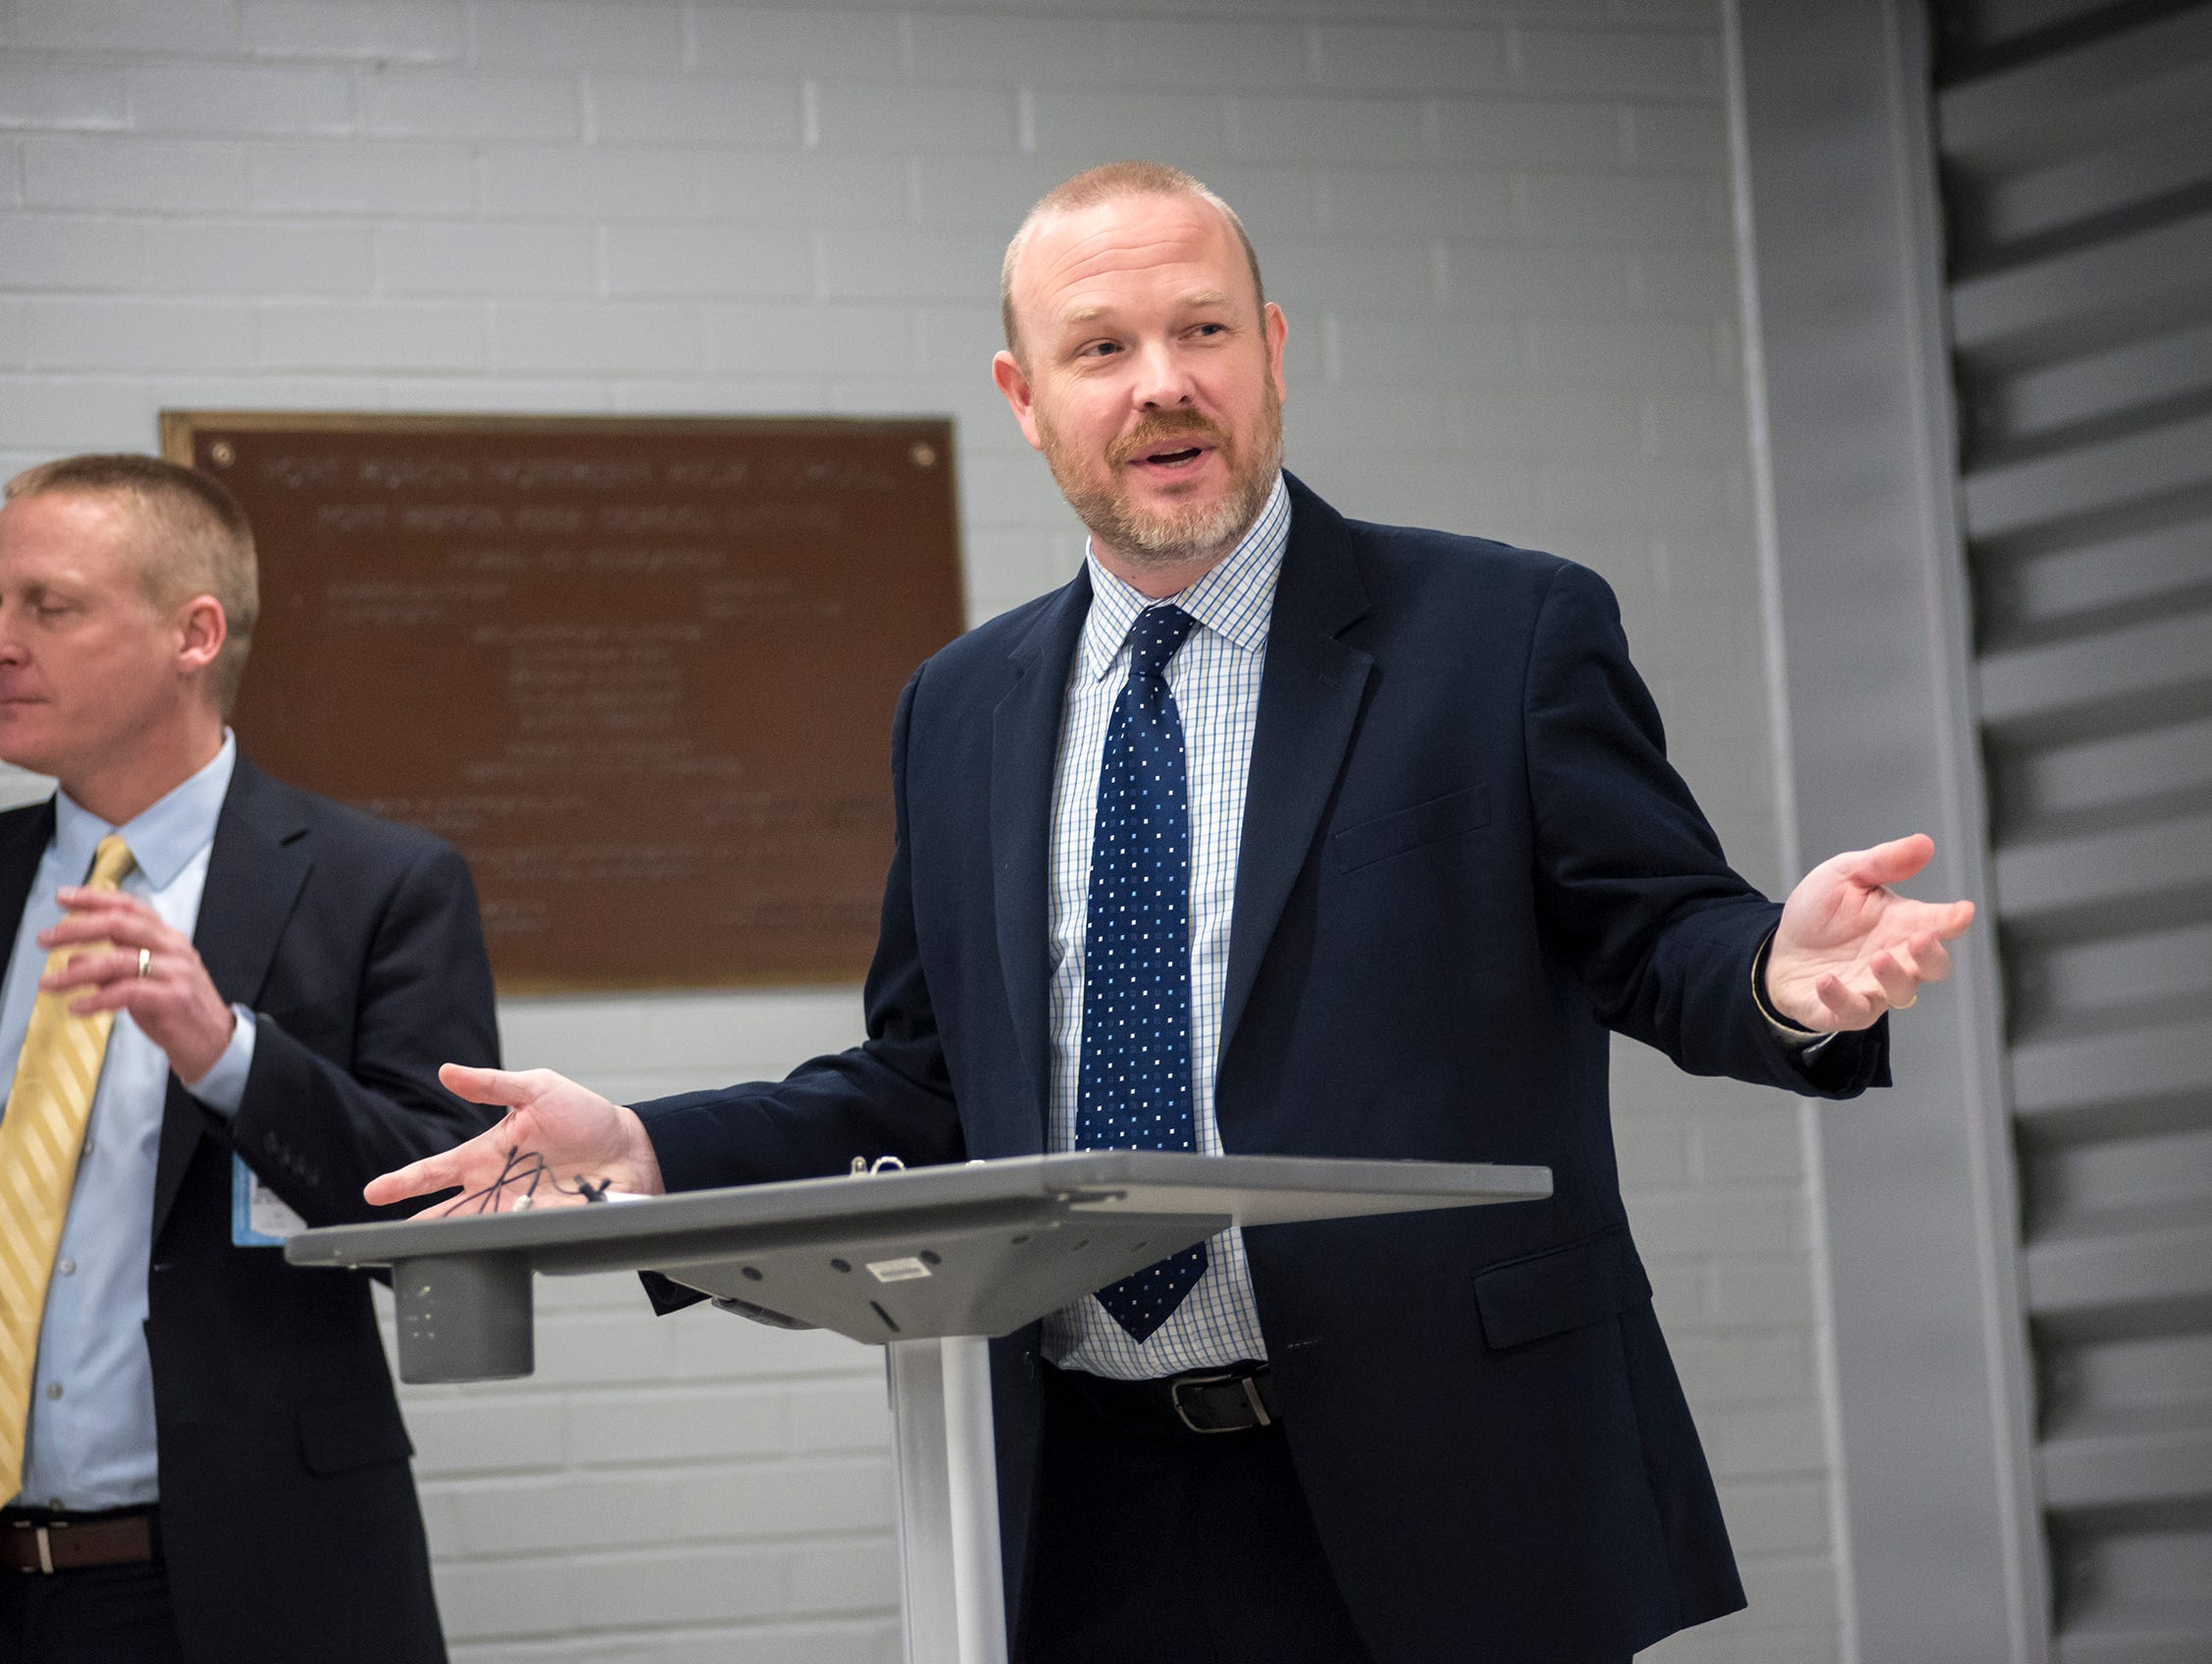 Port Huron Schools Superintendent Jamie Cain at a ribbon cutting ceremony for the P.J. Wallbank Springs, Inc. Engineering STEAM Lab  Wednesday, Jan. 23, 2019 at Port Huron Northern.